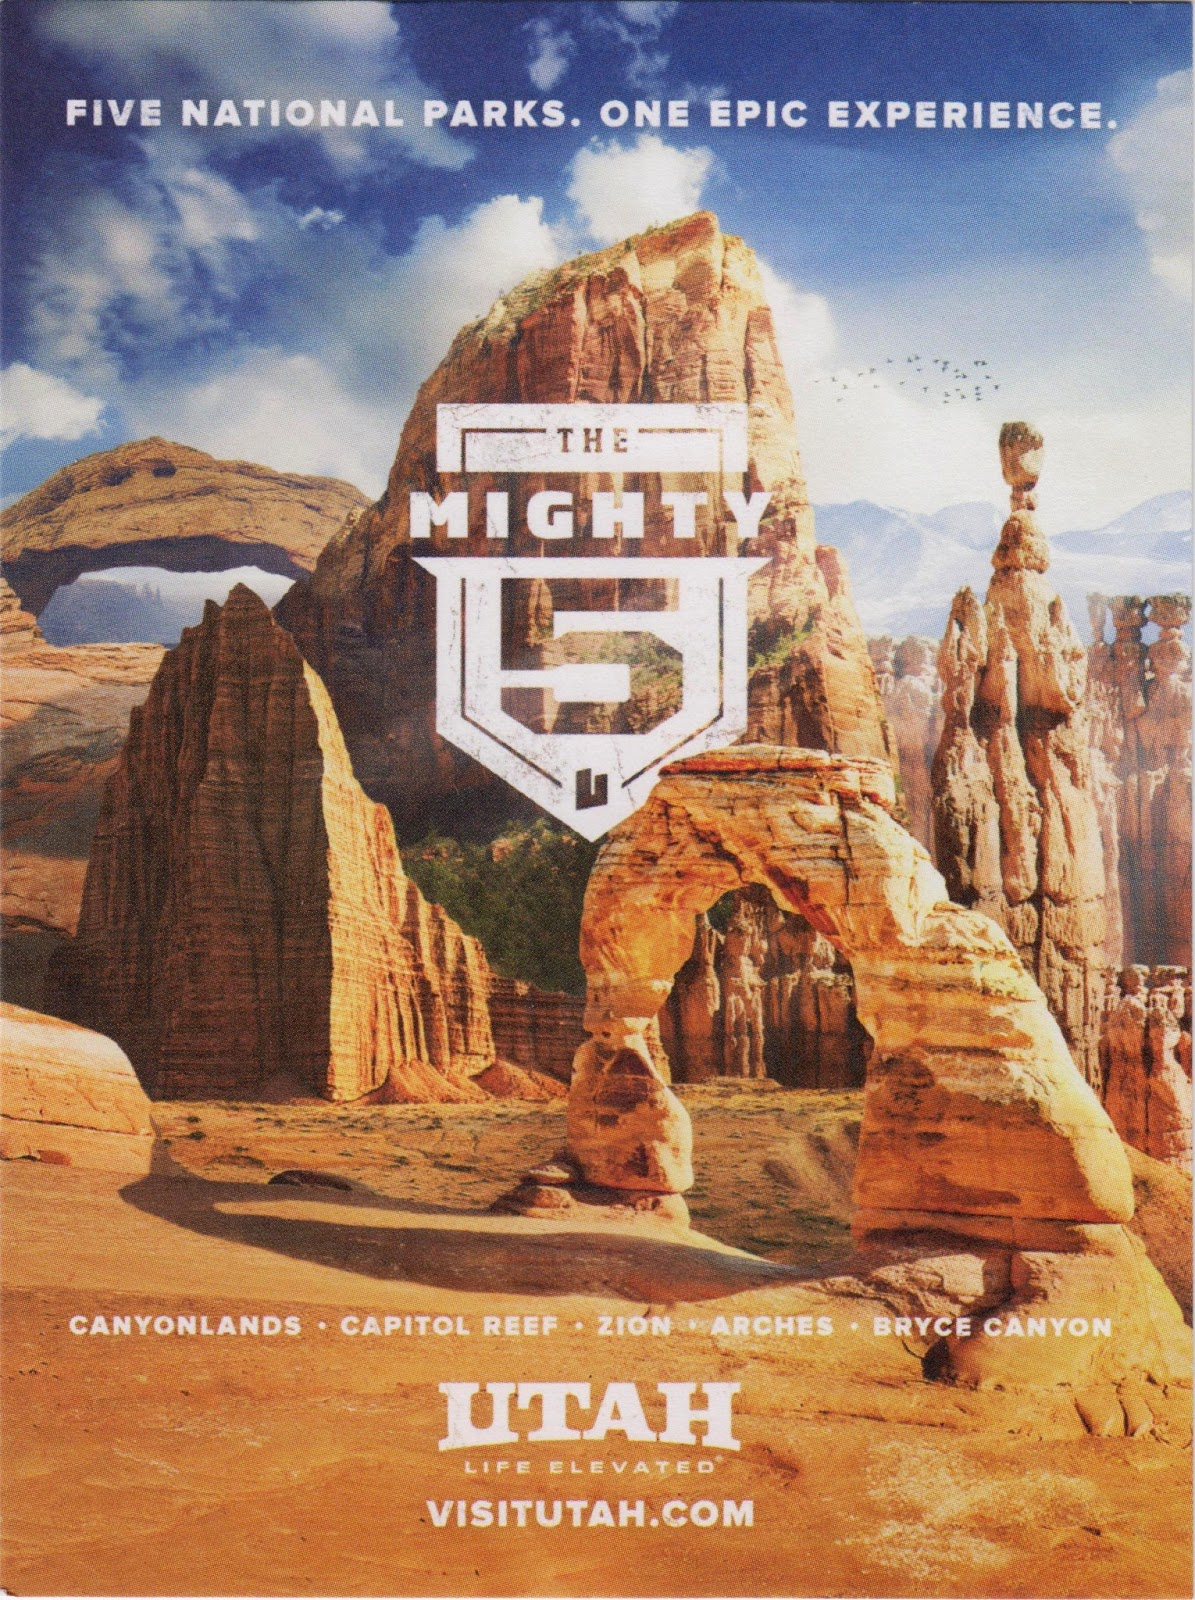 one postcard a day: mighty 5 in utah